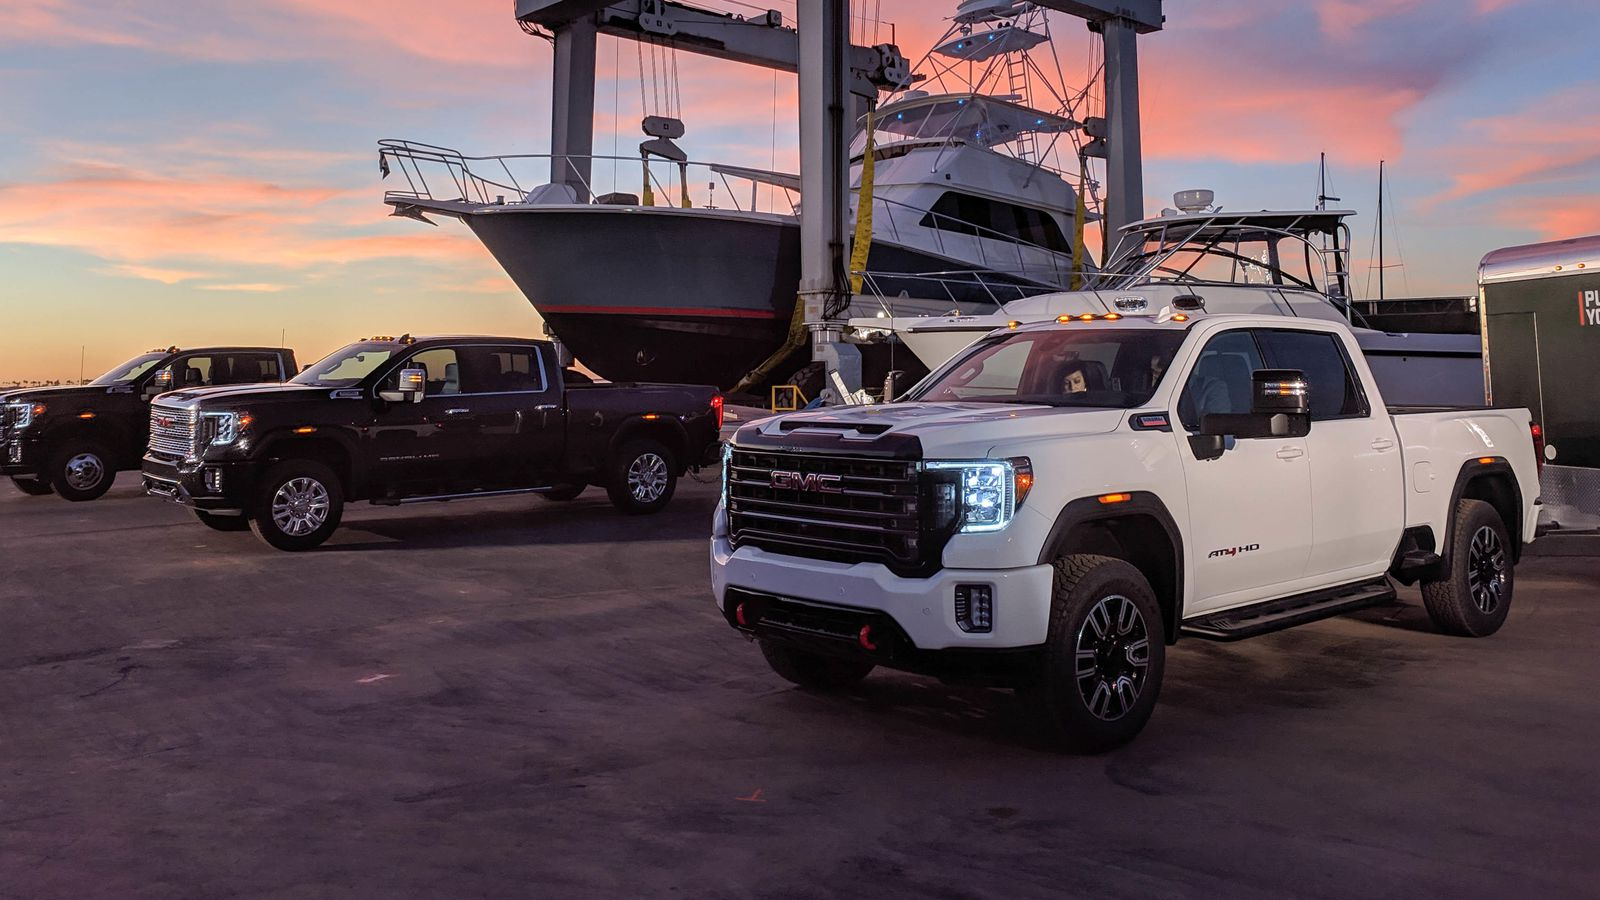 2020 Gmc Sierra Hd Tows 30,000 Pounds, Has X-Ray Camera Tech 2020 Gmc 2500 Build And Price